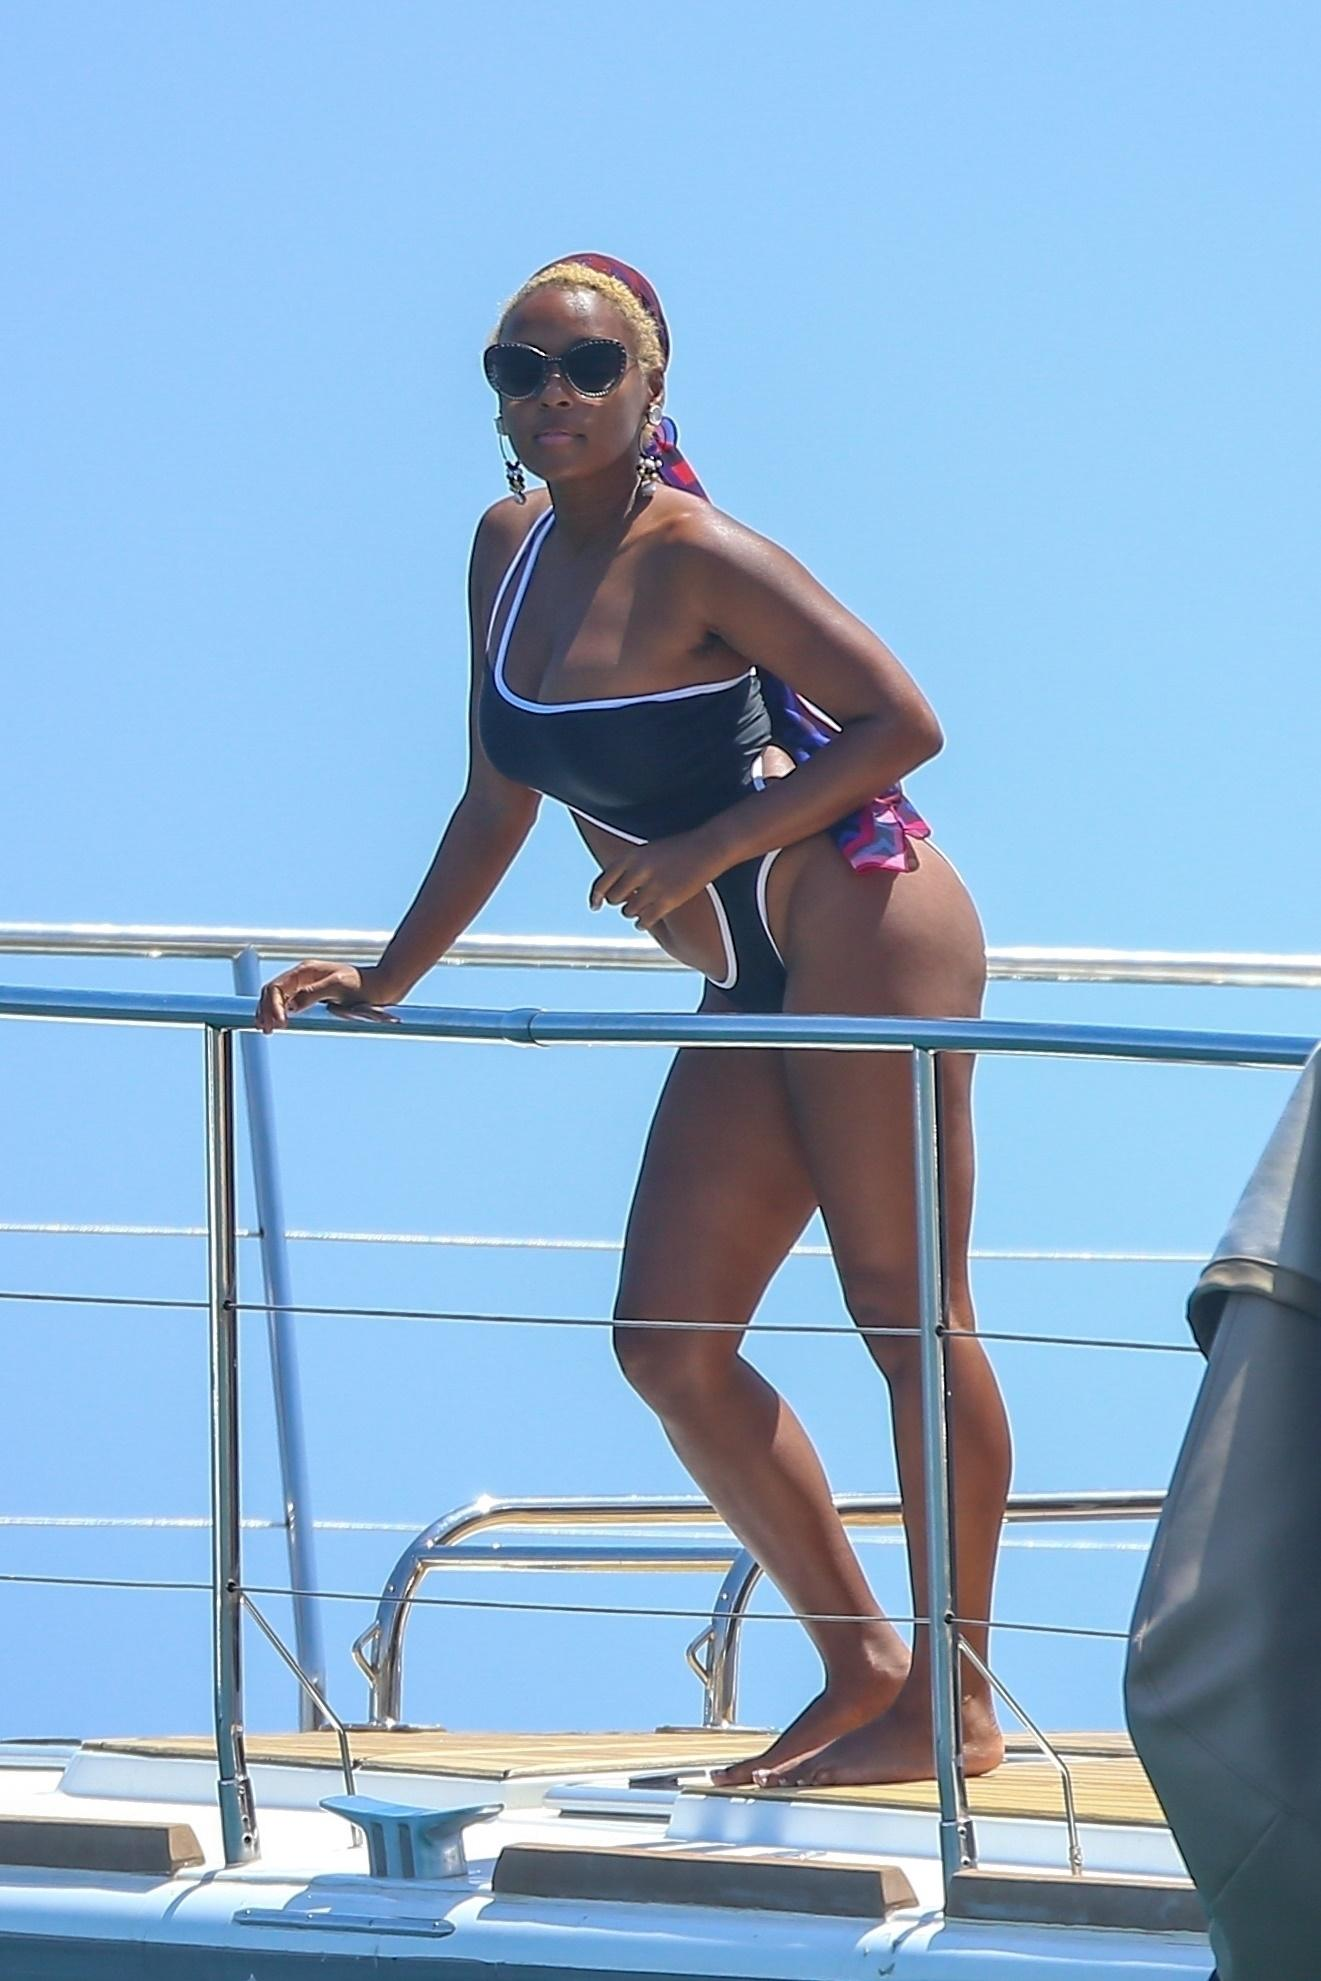 Janelle Monáe on Vacation in Cabo San Lucas